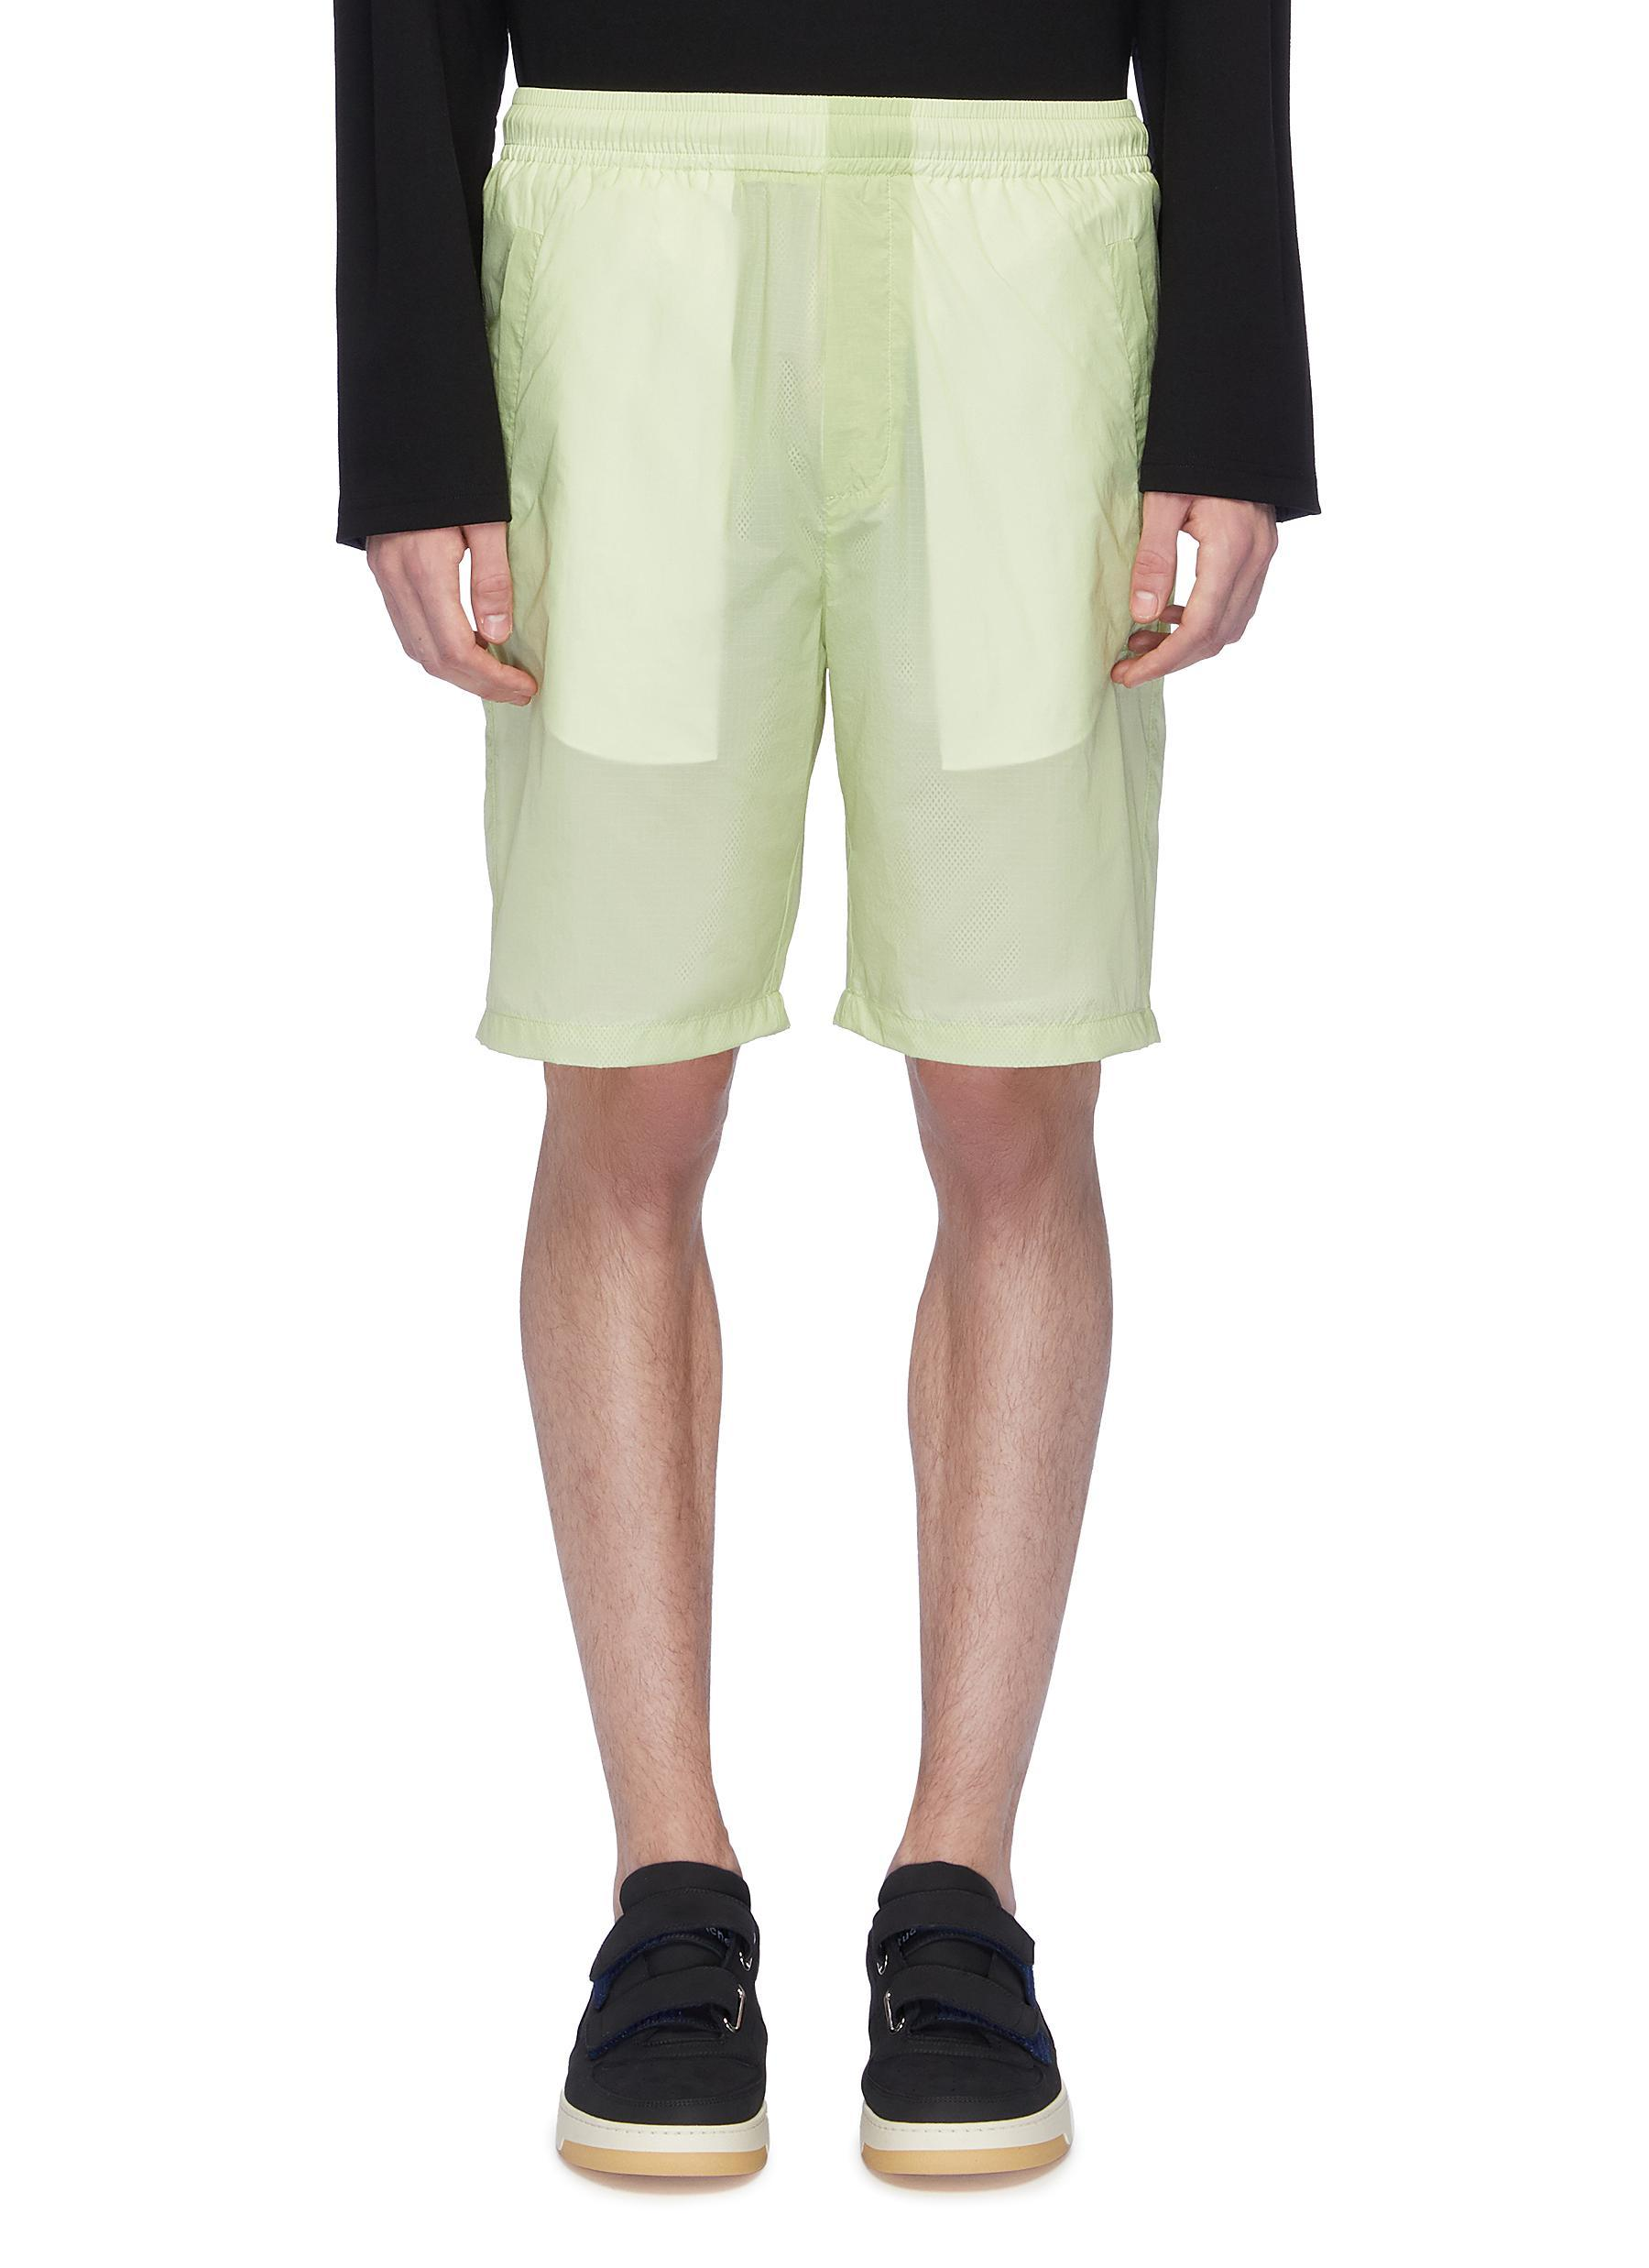 6a539e58d0 Acne Studios 'romeo' Ripstop Shorts in Green for Men - Lyst